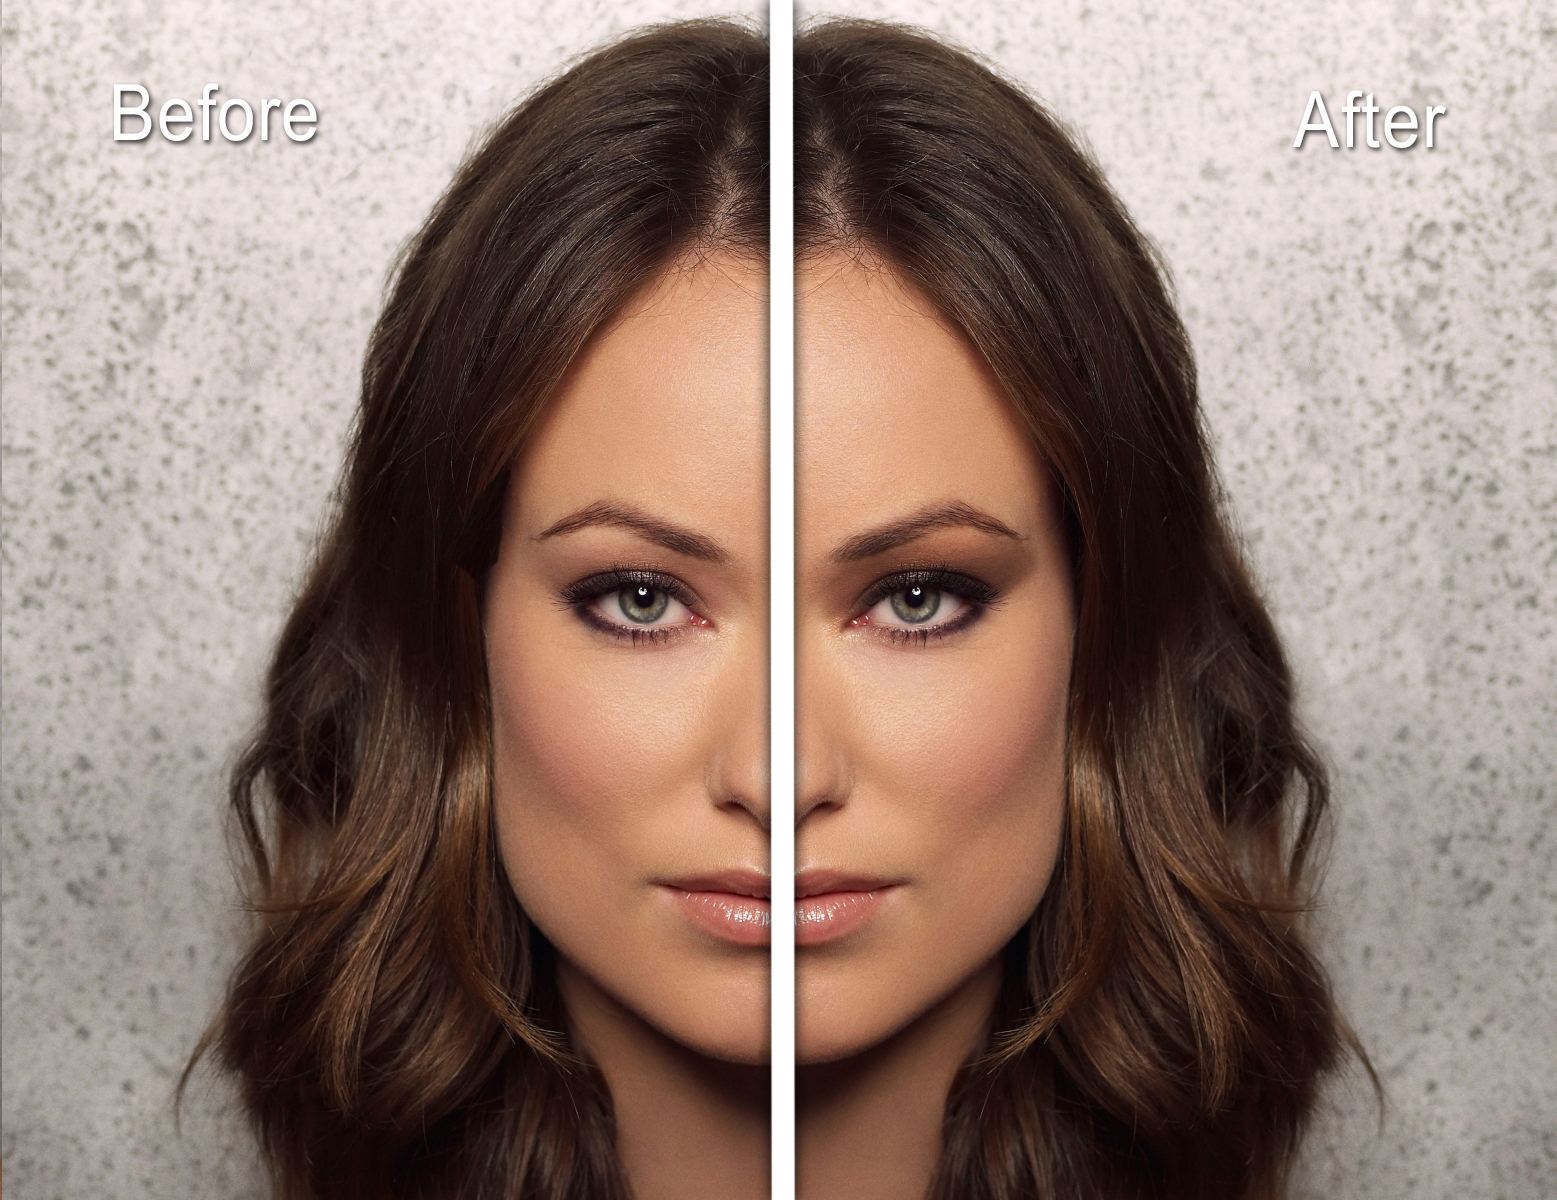 Olivia wilde hd wallpapers 600x462 digital make up tutorial